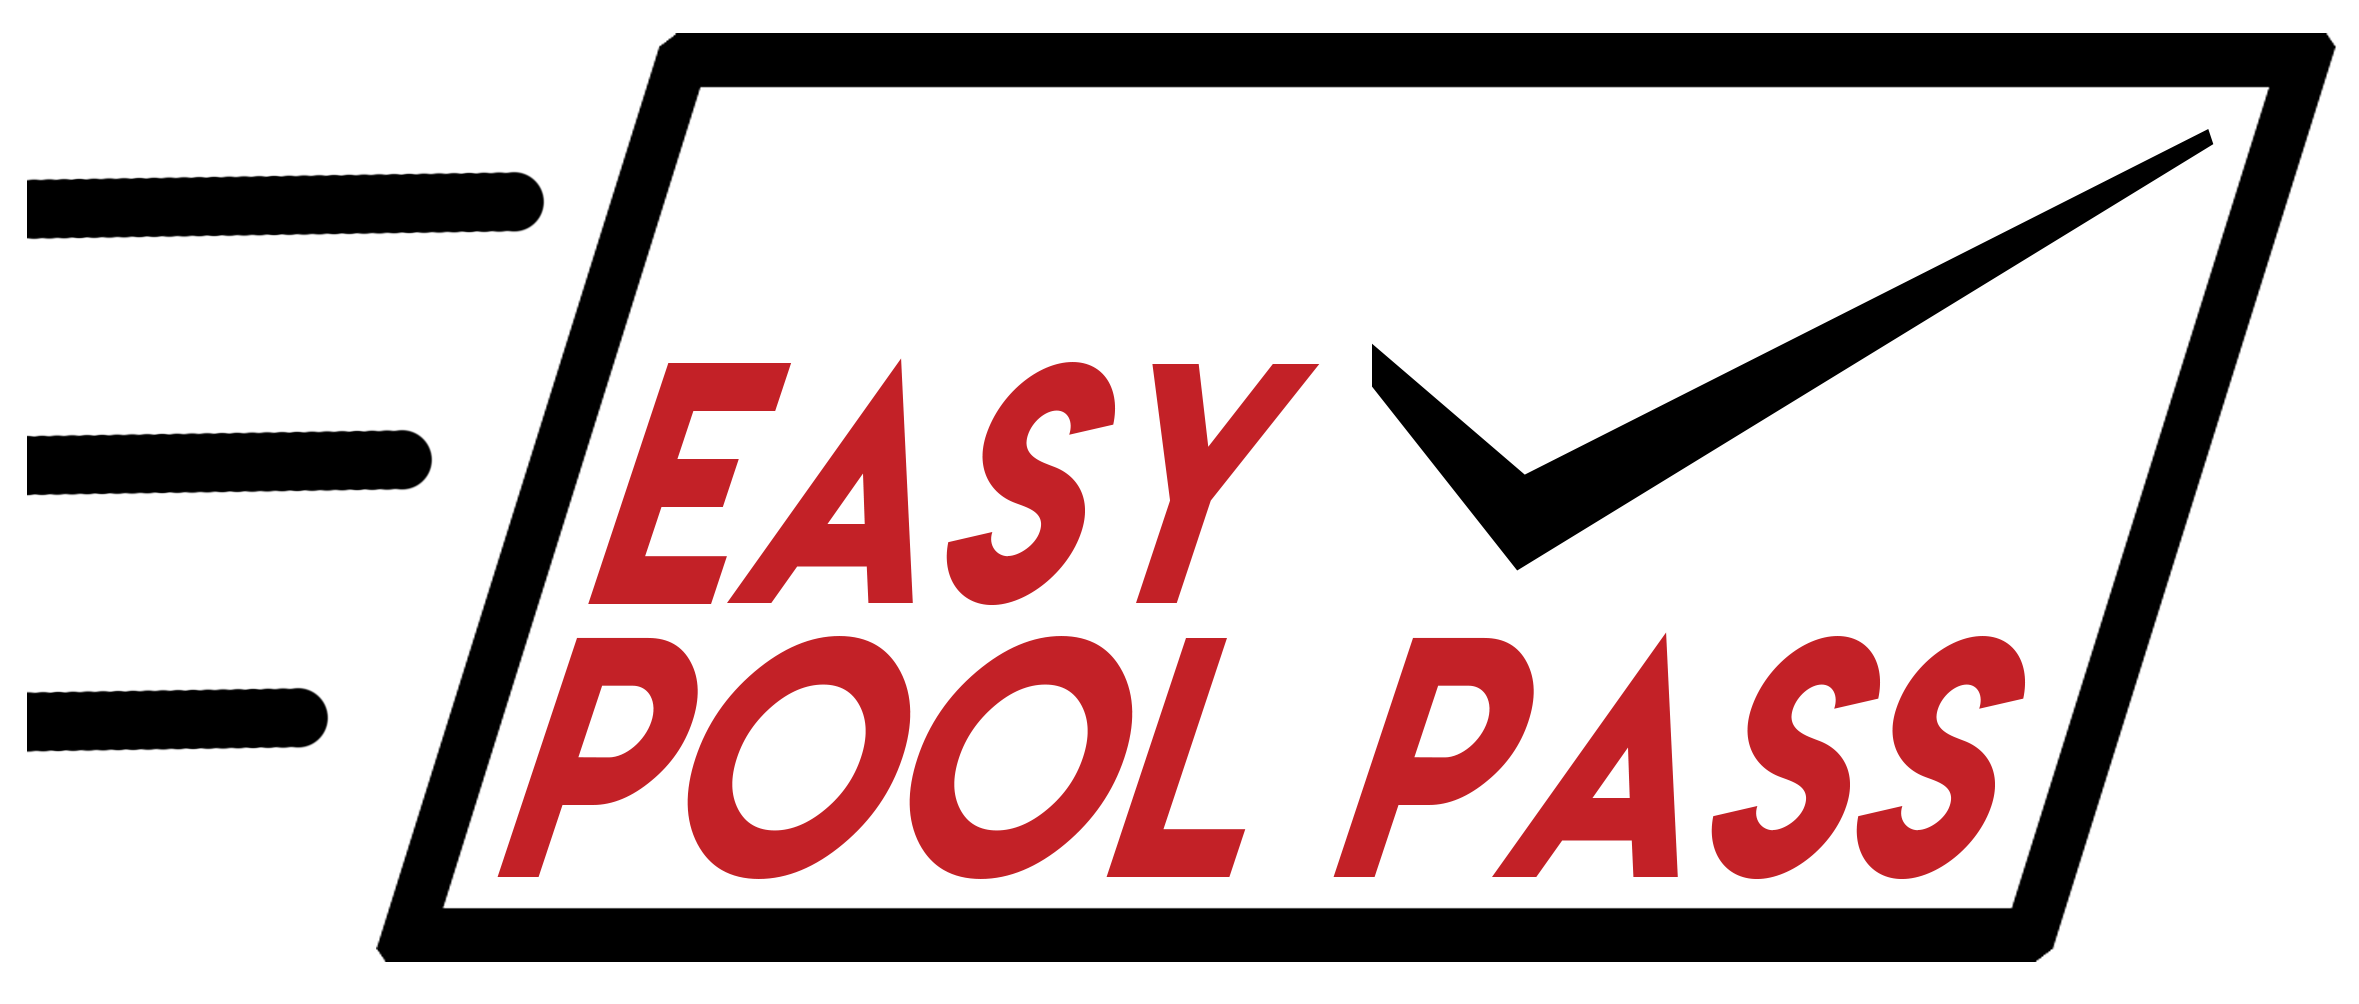 PoolPass